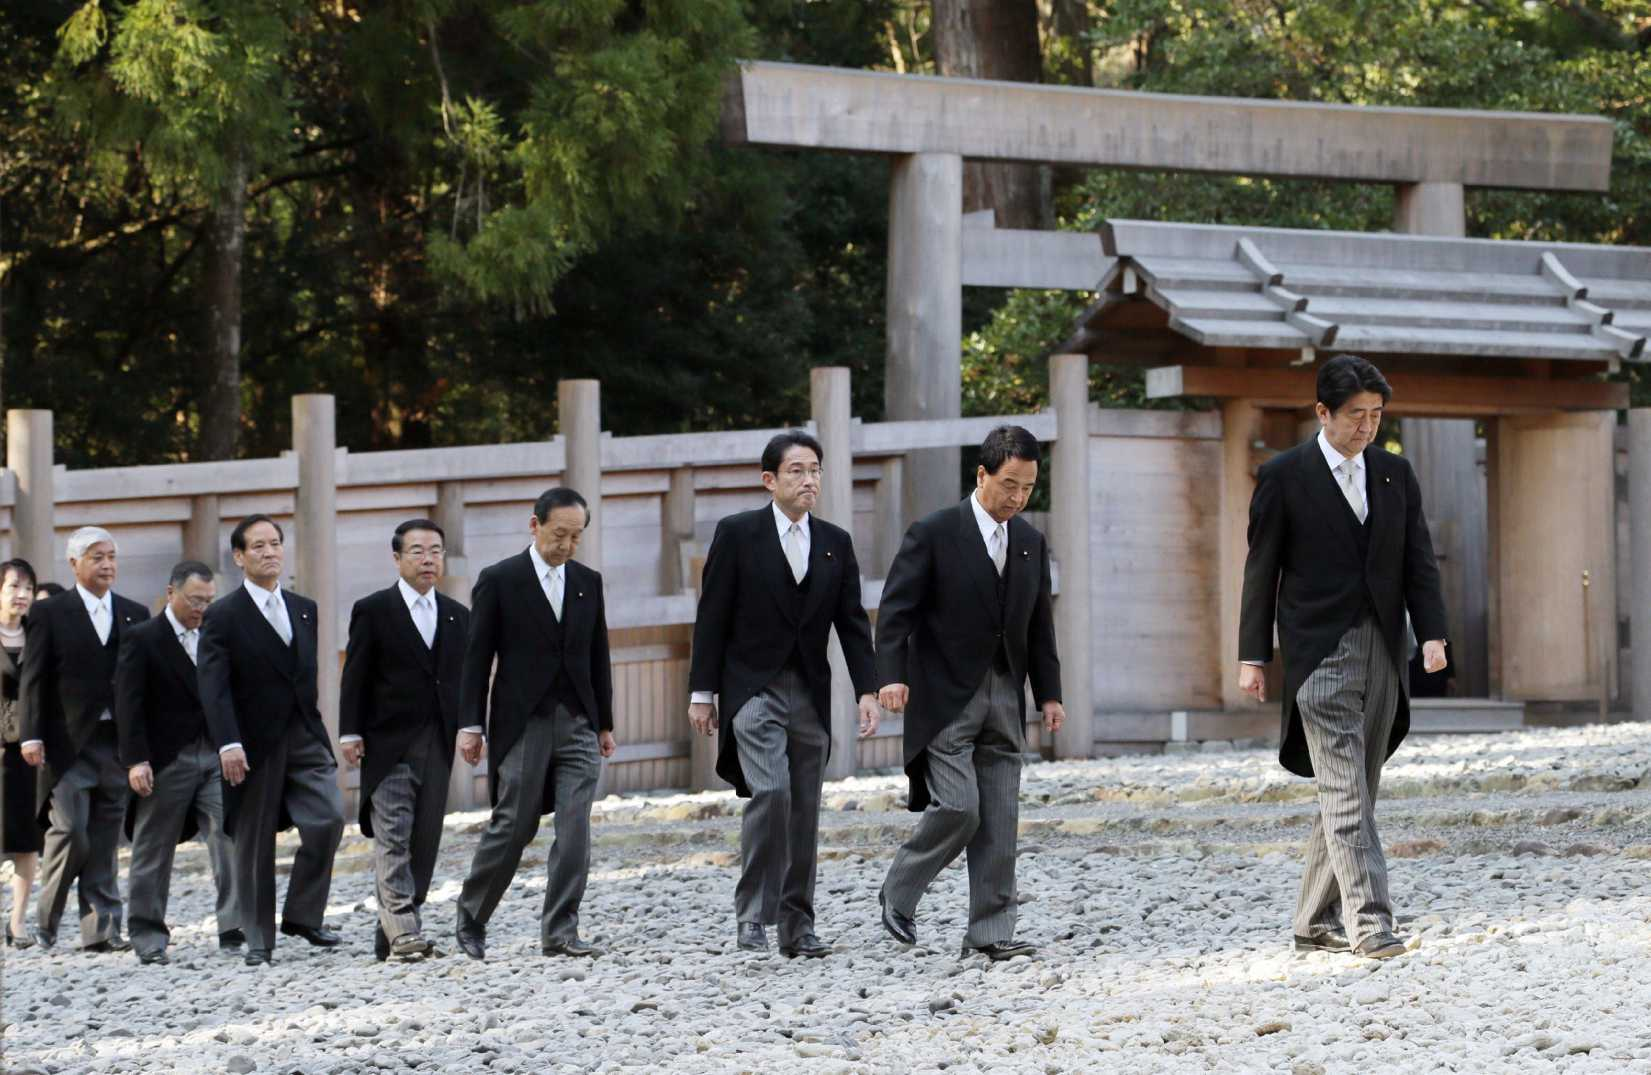 Japanese Prime Minister Shinzo Abe, right, and his Cabinet members visit the Ise shrine in Ise, in central Japan, on Jan. 5, 2015